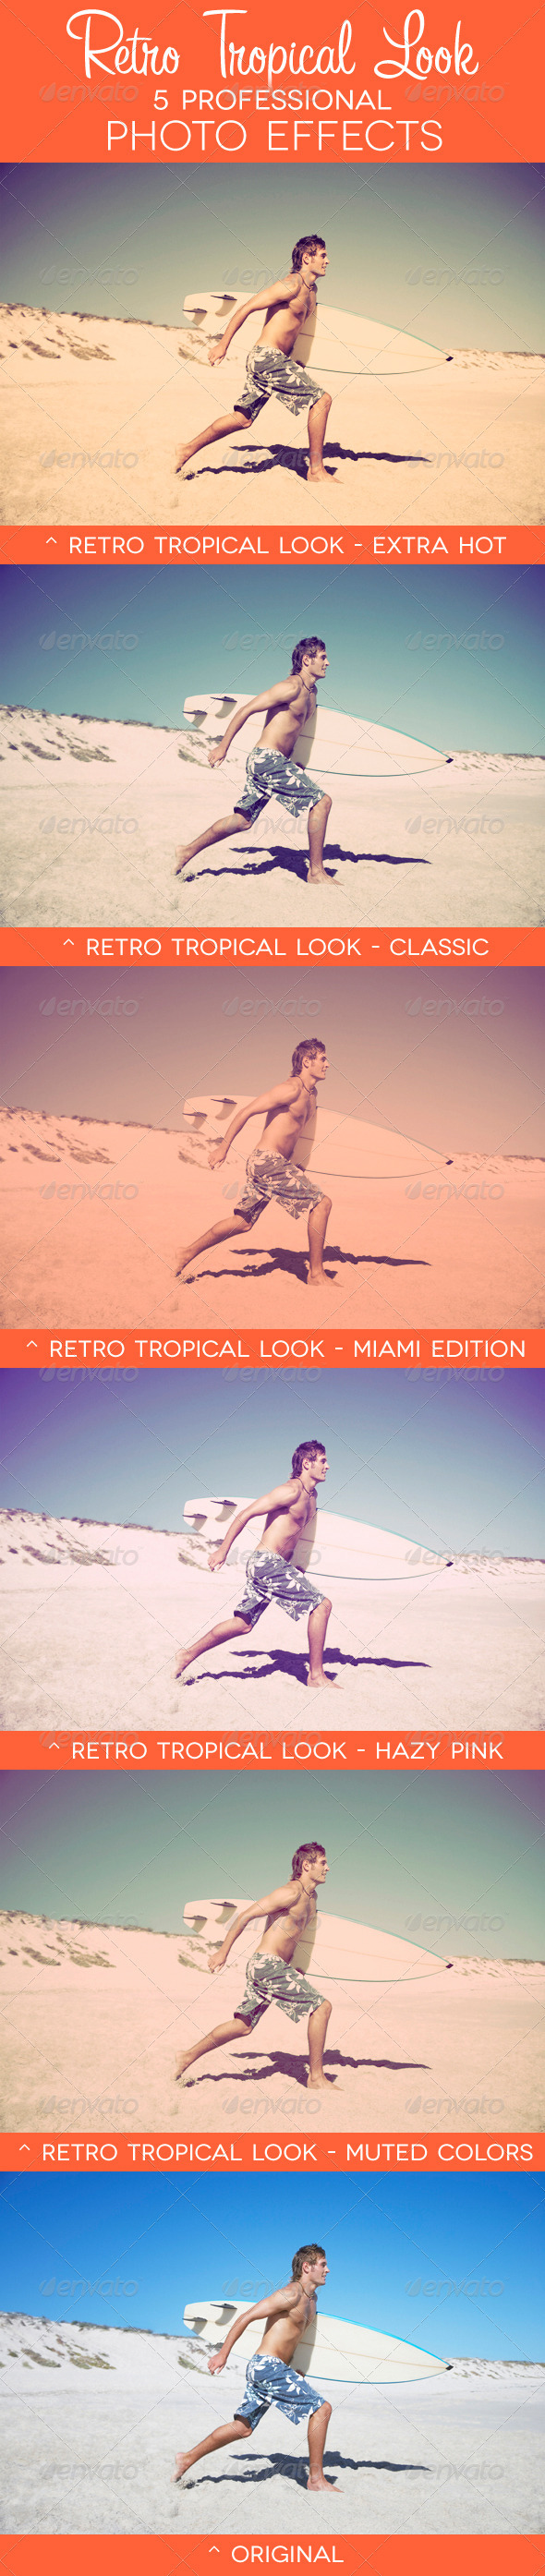 Retro Tropical Look - 5 Premium Photo Effects - Photo Effects Actions